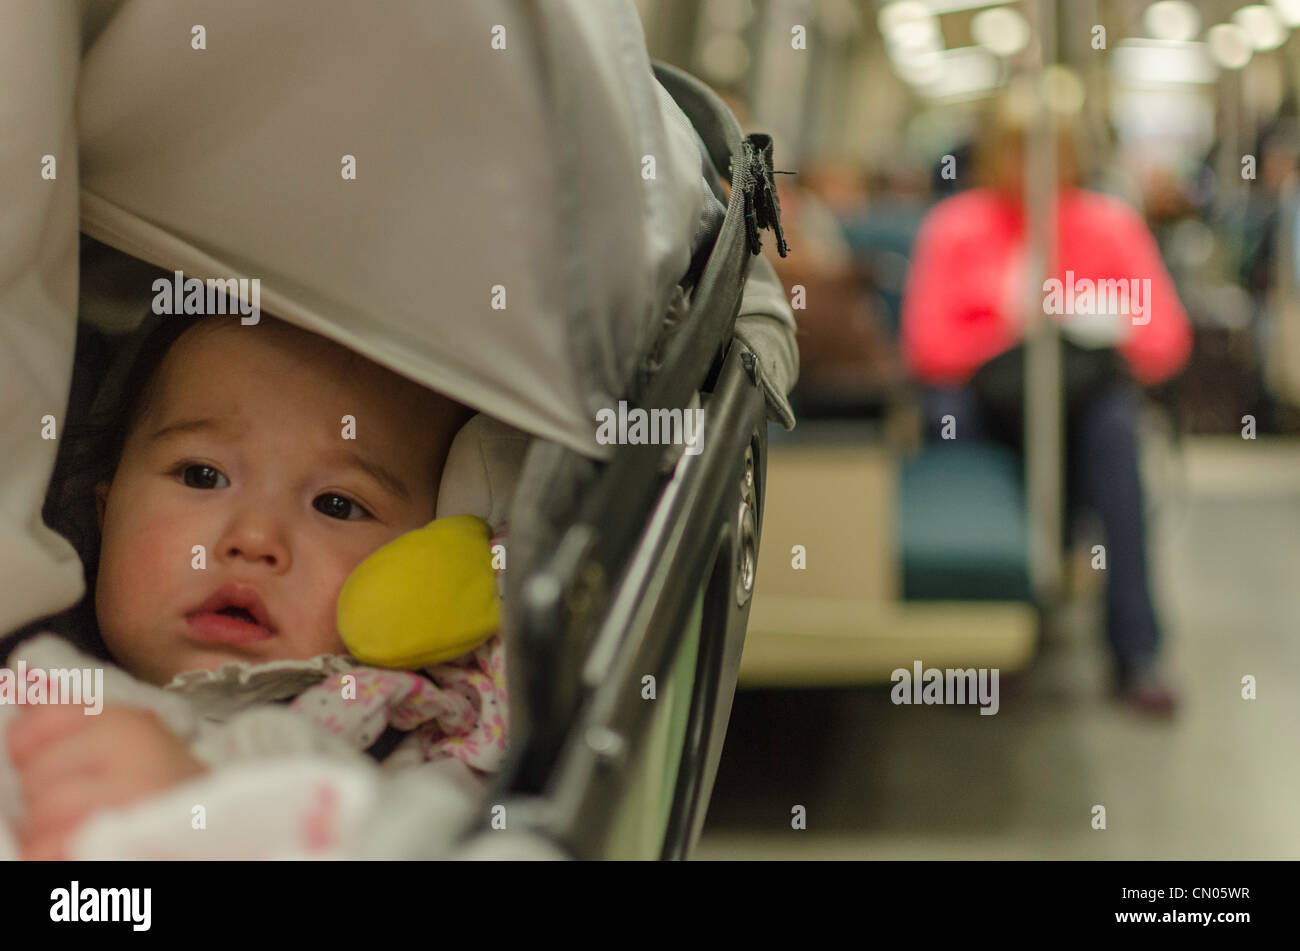 Baby in a BART train car in San Fransisco Bay area. - Stock Image